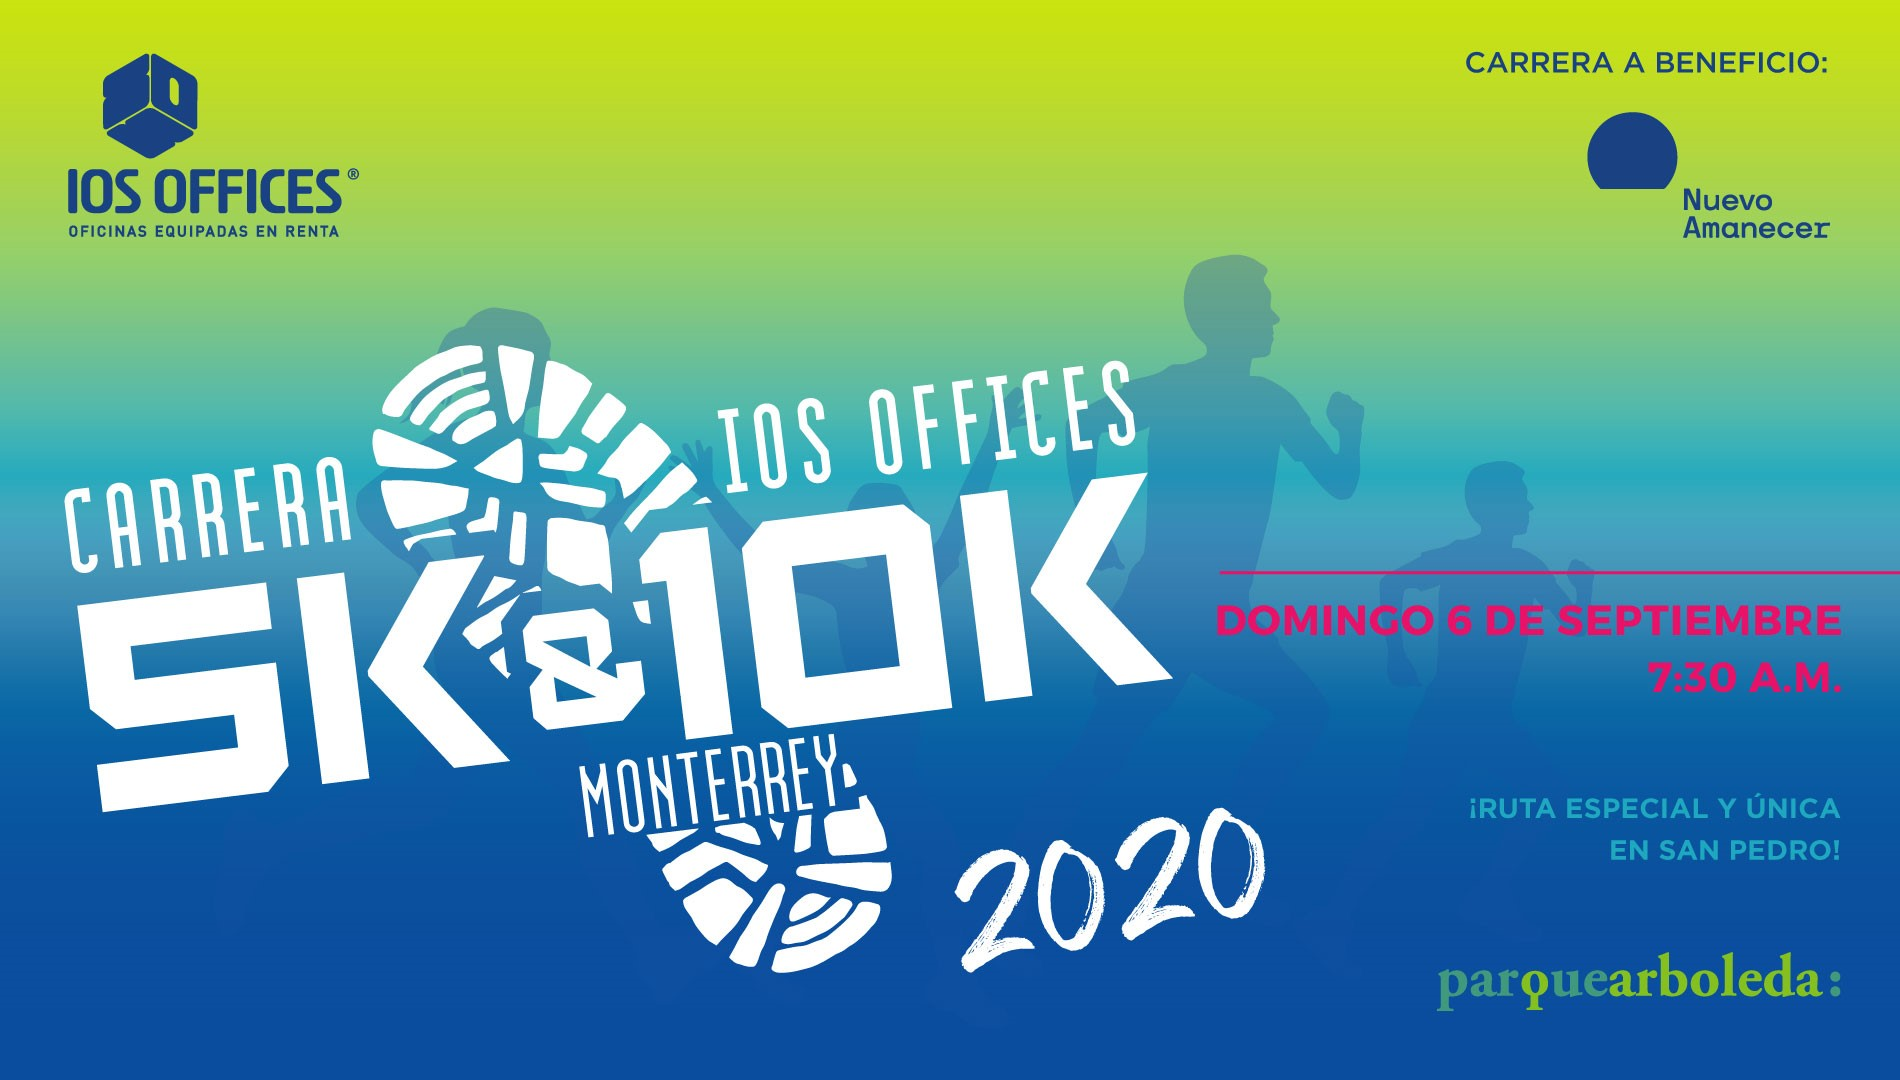 CARRERA IOS OFFICES 5K Y 10K  MTY 2020